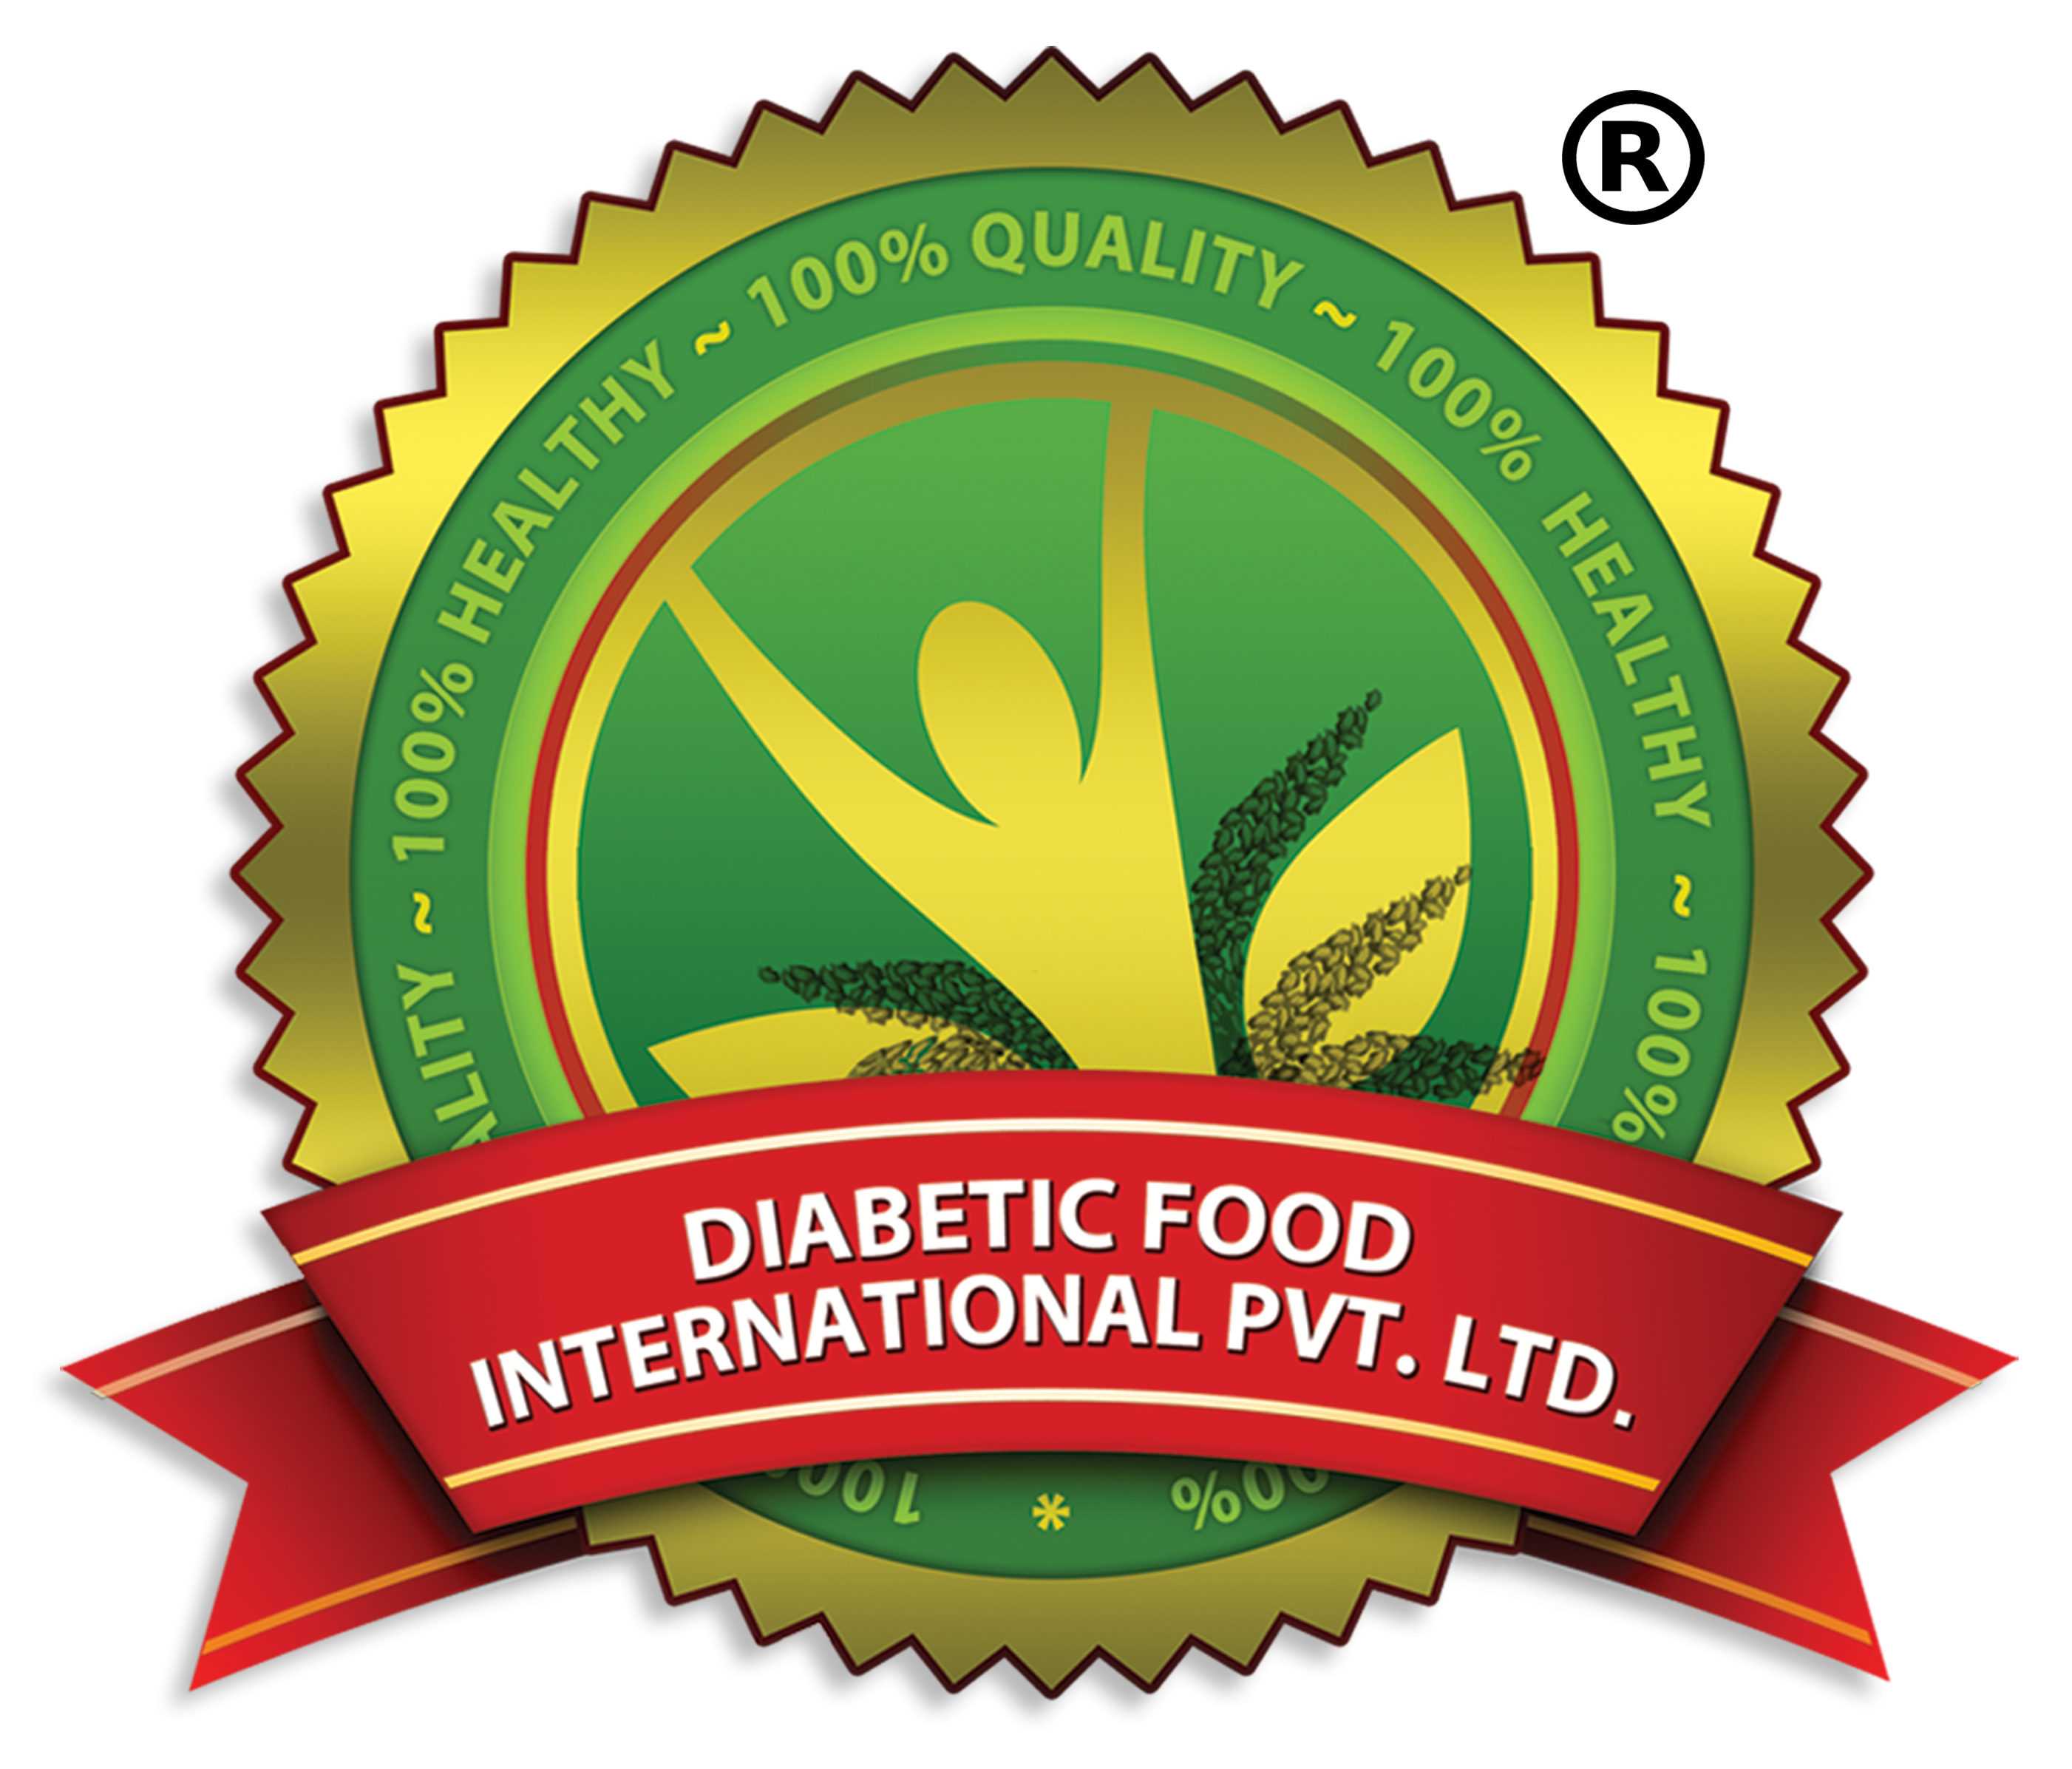 Diabetic Food International Pvt Ltd (DFI)